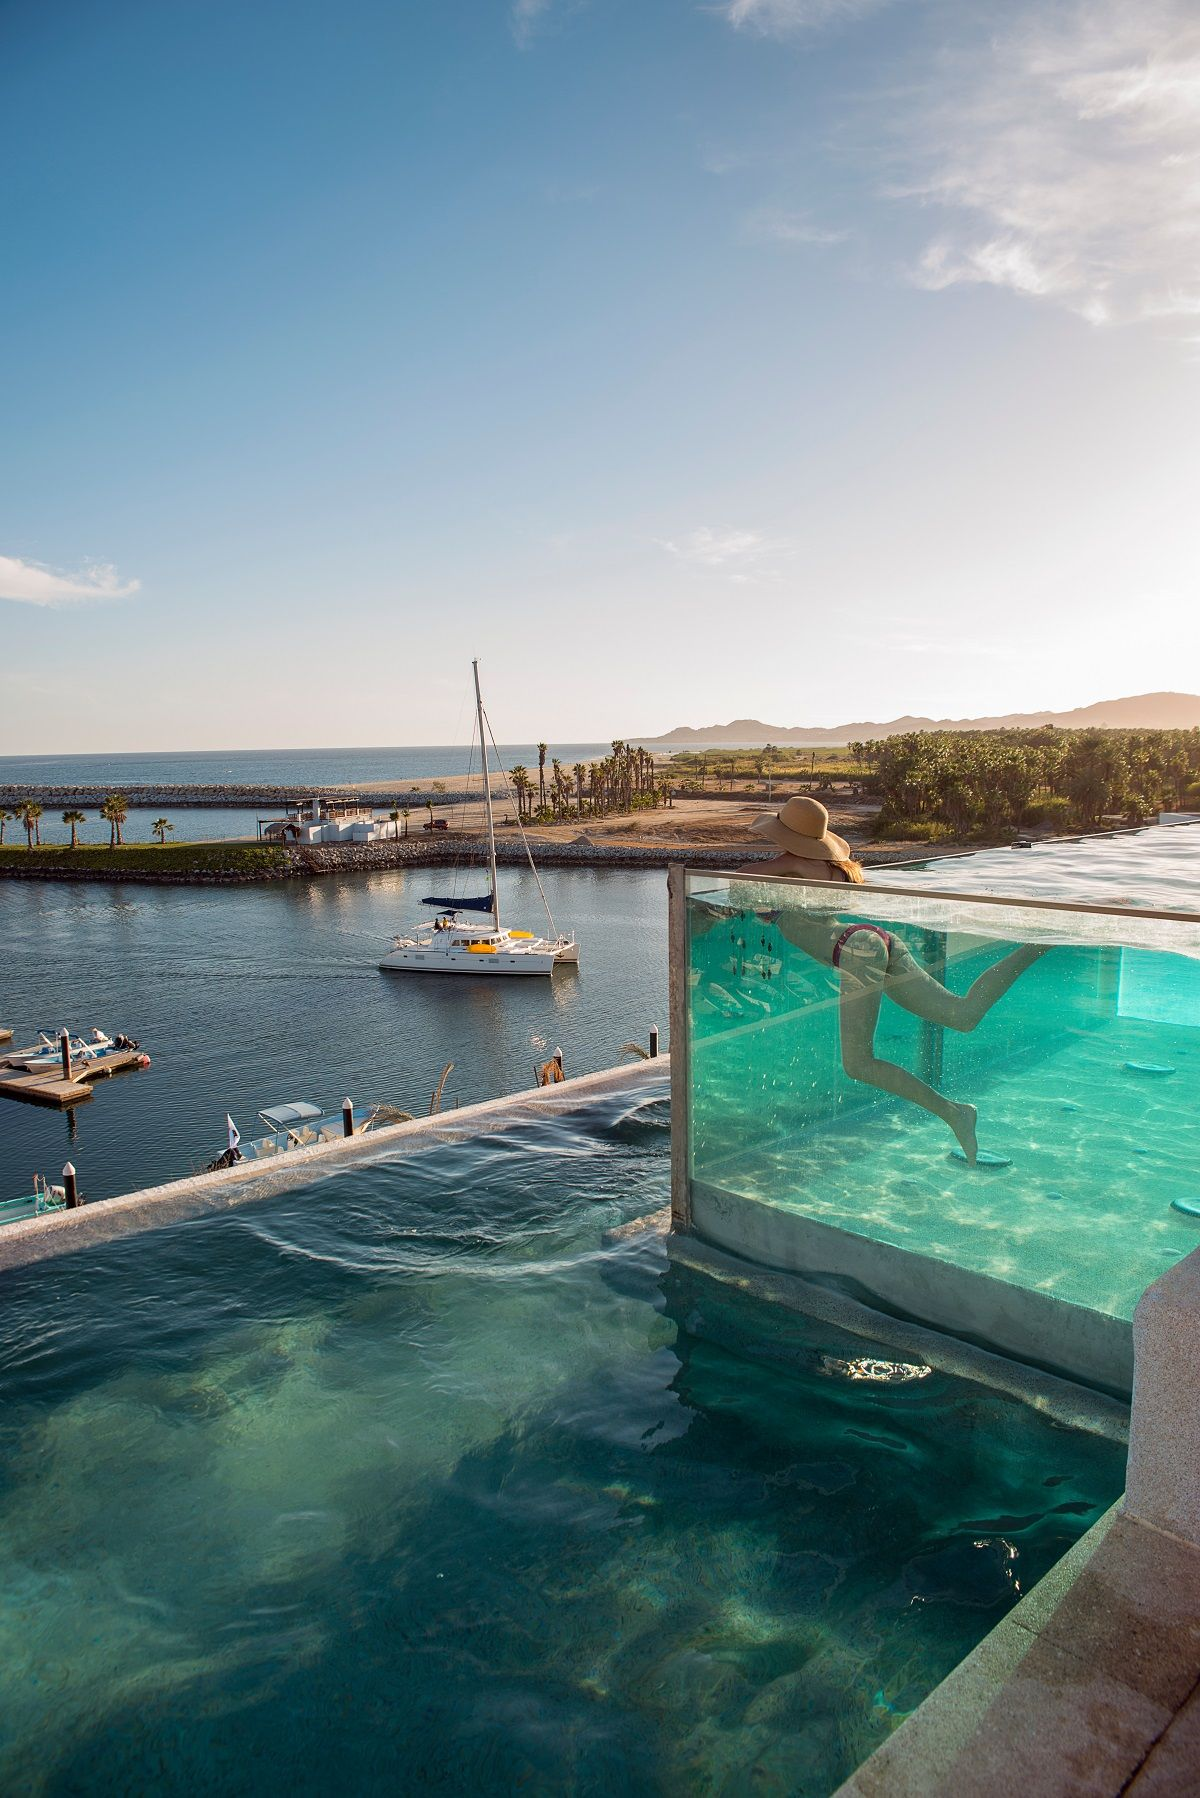 320ebbd1e68 The sophisticated El Ganzo Hotel in Puerto Los Cabos boasts a stylish  rooftop pool oasis where you can chill out on Bali-style daybeds